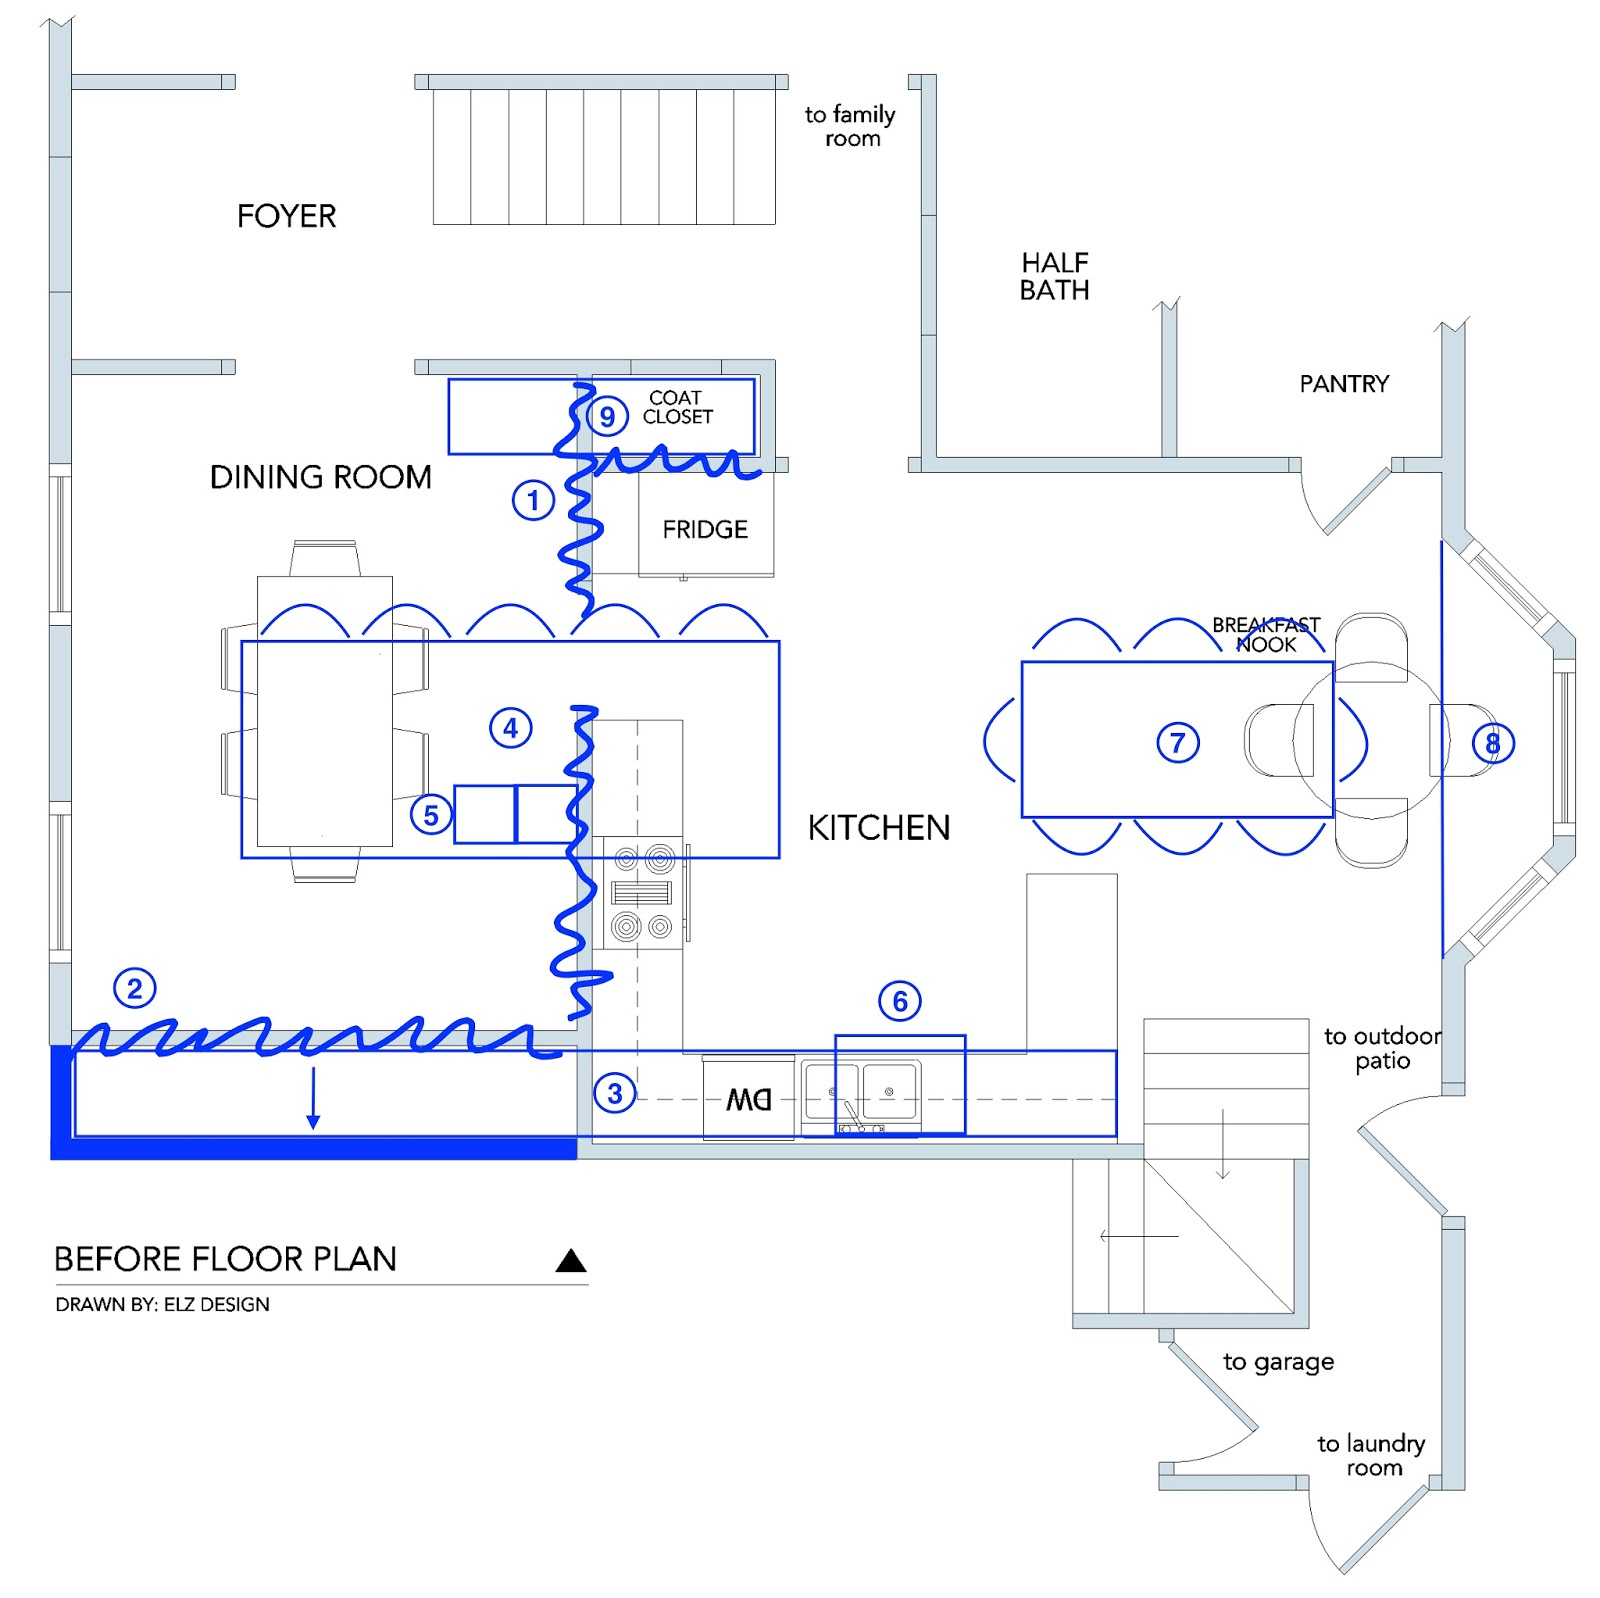 Remove Wall Separating Kitchen And Dining Room To Open The Kitchen Up And Create More Space